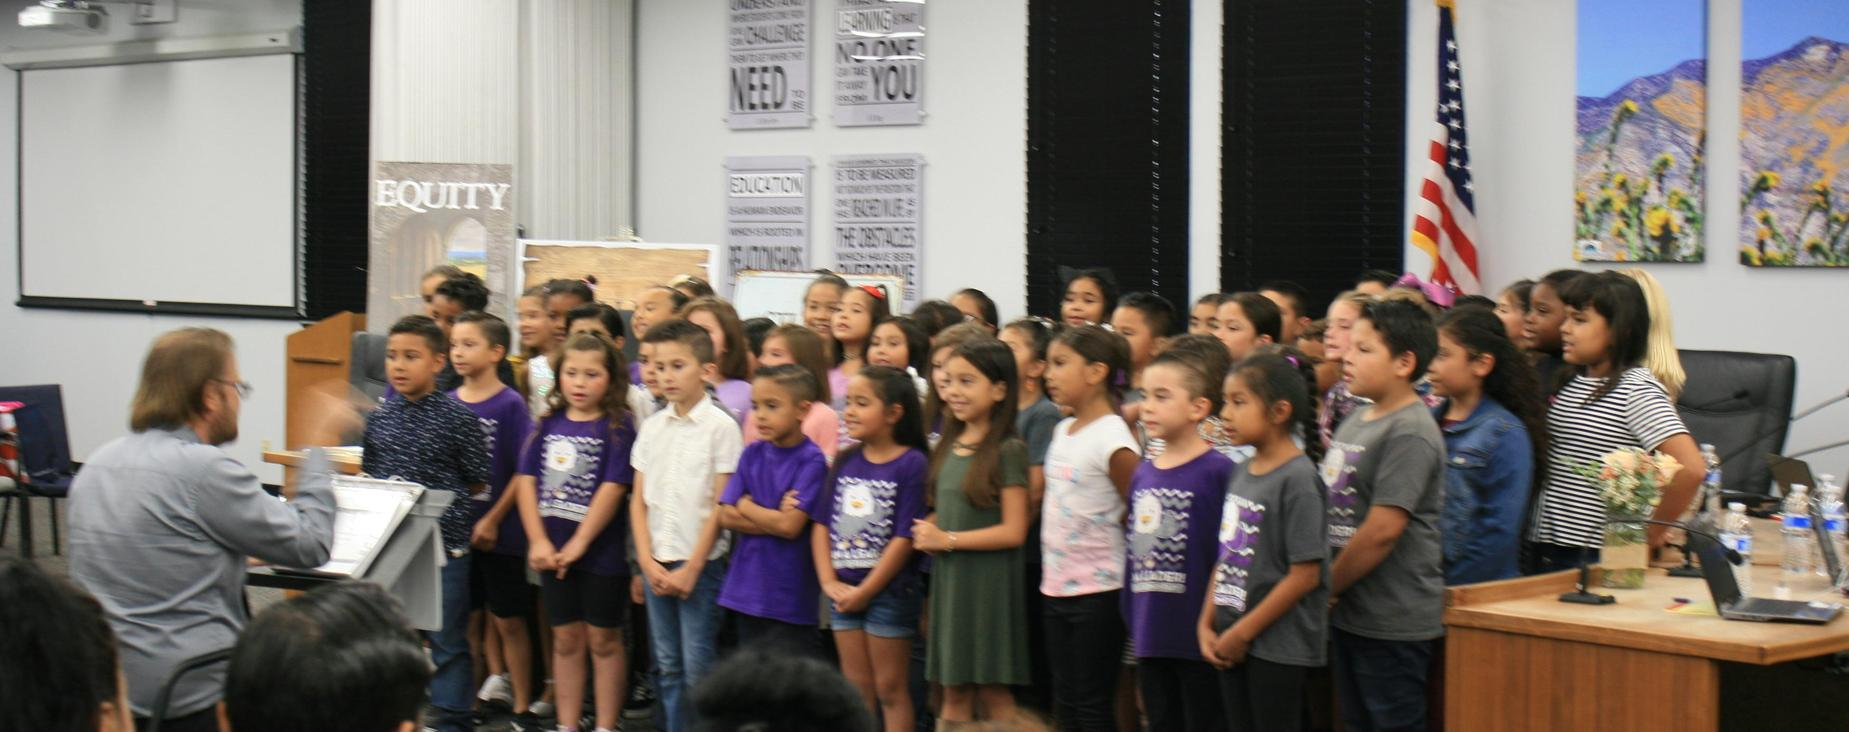 Singing Eagles from the Nest at Estudillo Elementary, our Leader in Me elementary school, at SJUSD September Board Meeting.